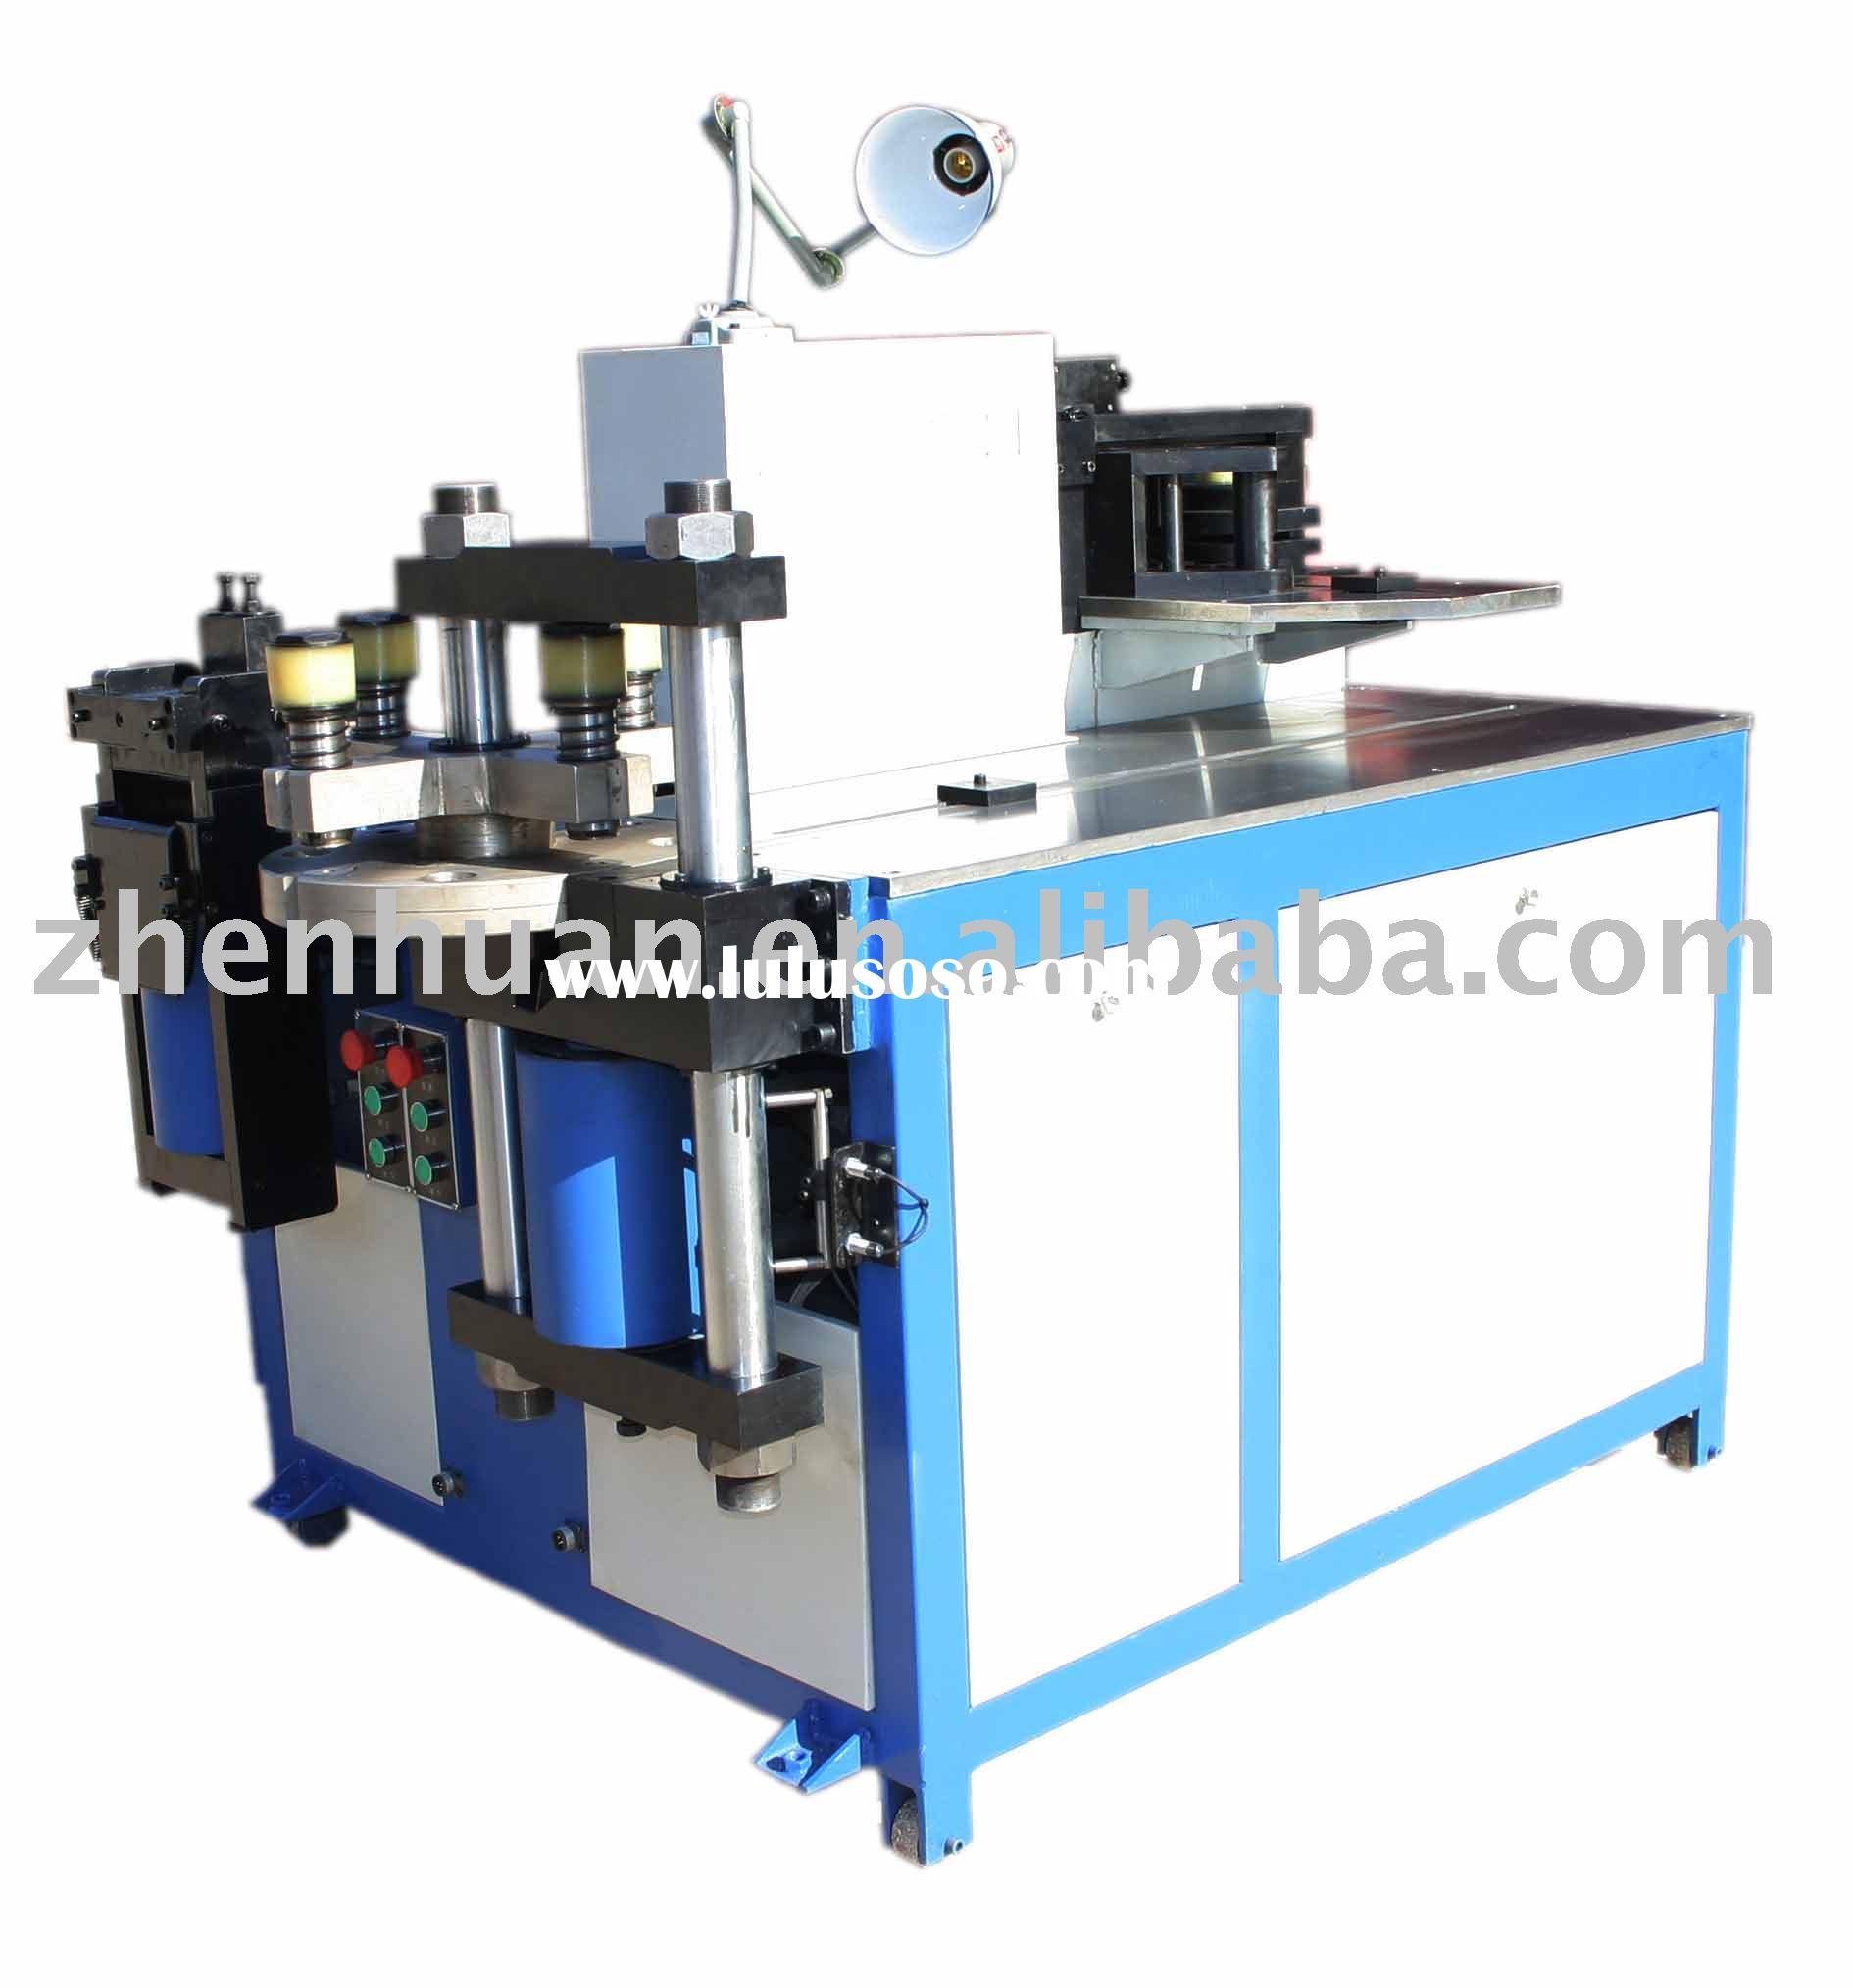 Bus bar Machine,busbar making machine,bus bar punching cutting and bending machine